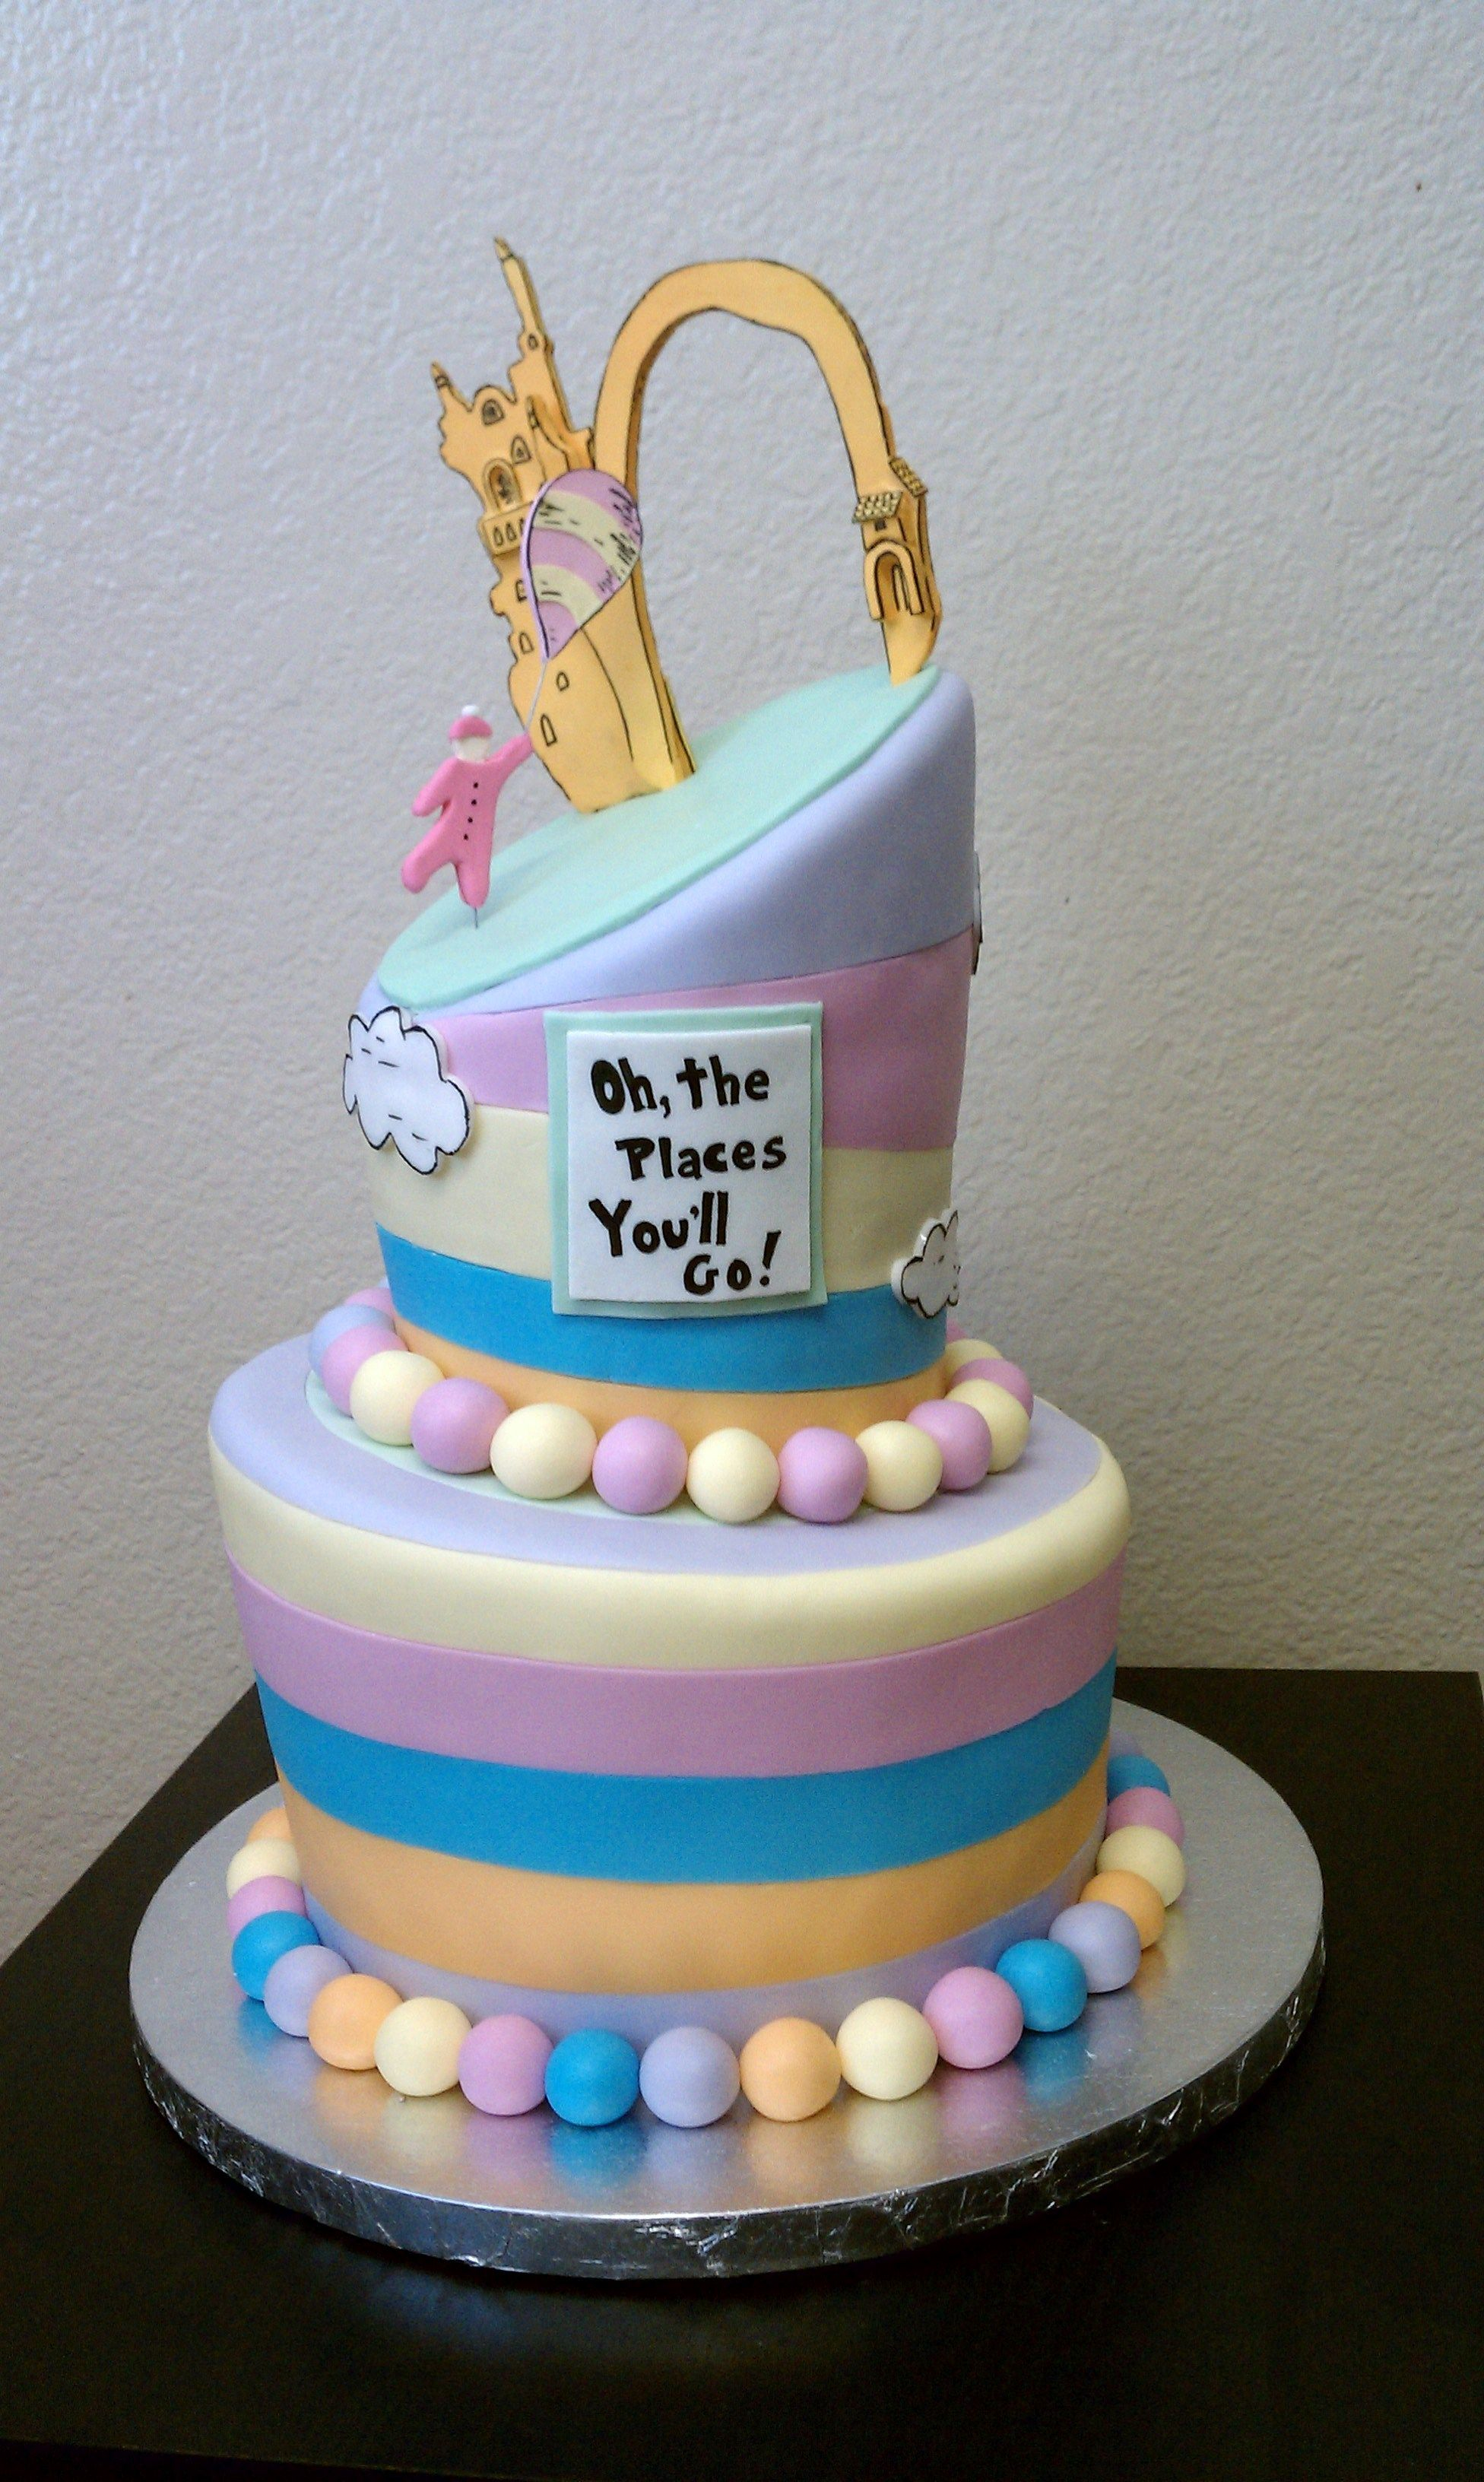 Dr Seuss Baby Shower Oh The Places Youll Go Cake By Cake Whimsy